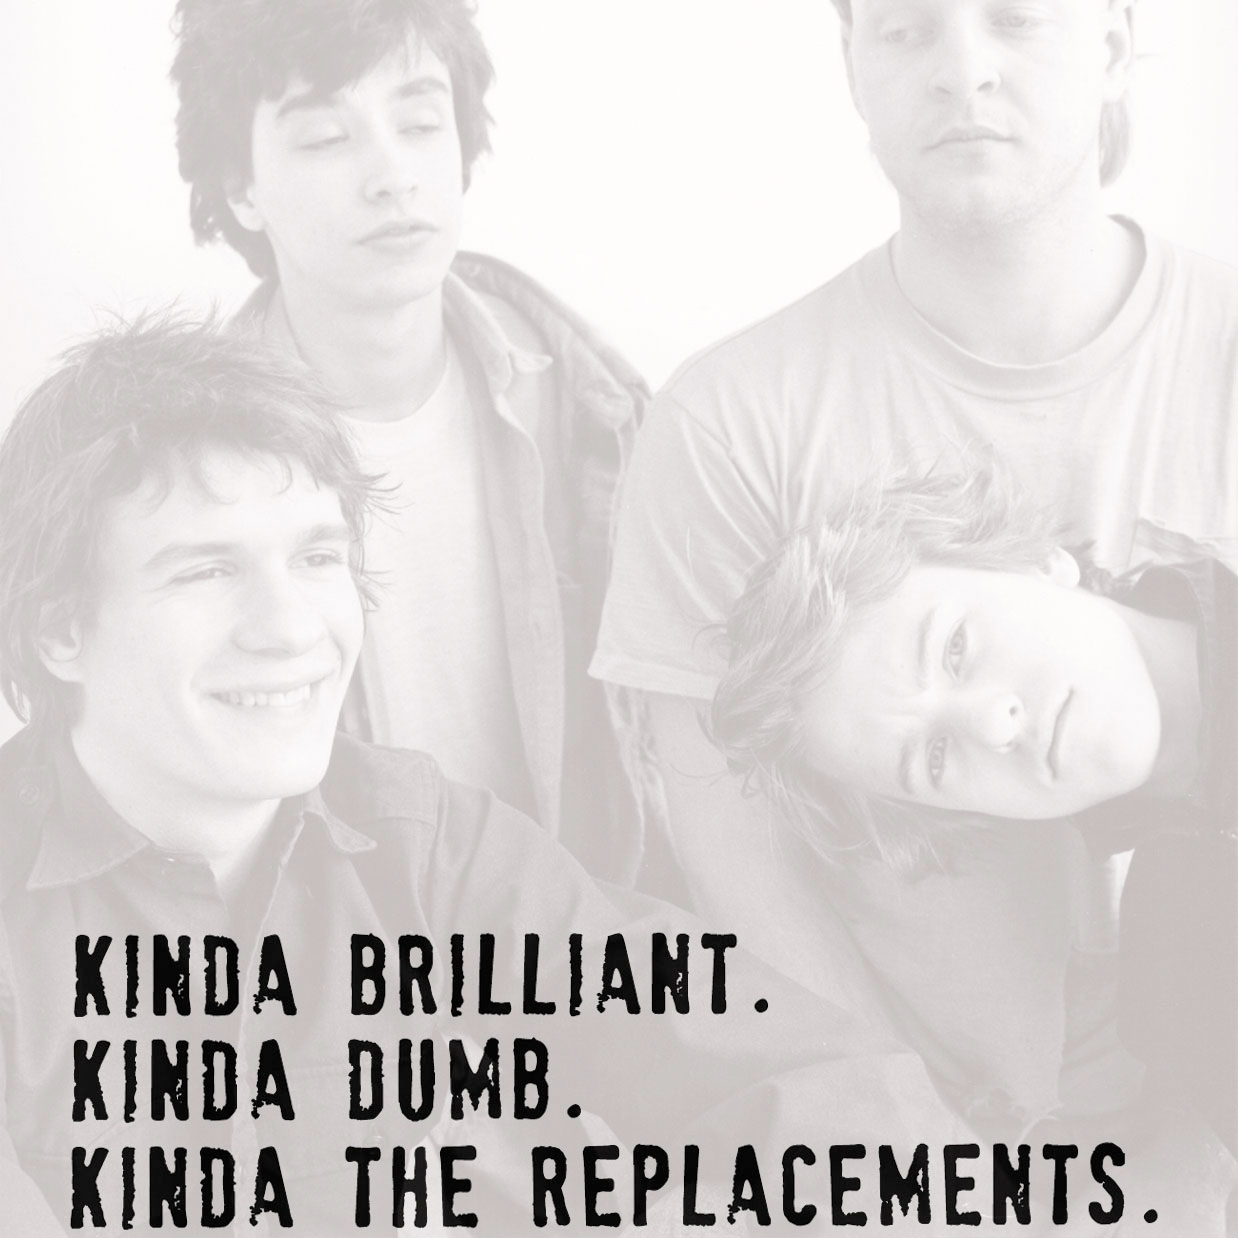 Fan-Based Replacements Documentary Set To Debut Later This Month